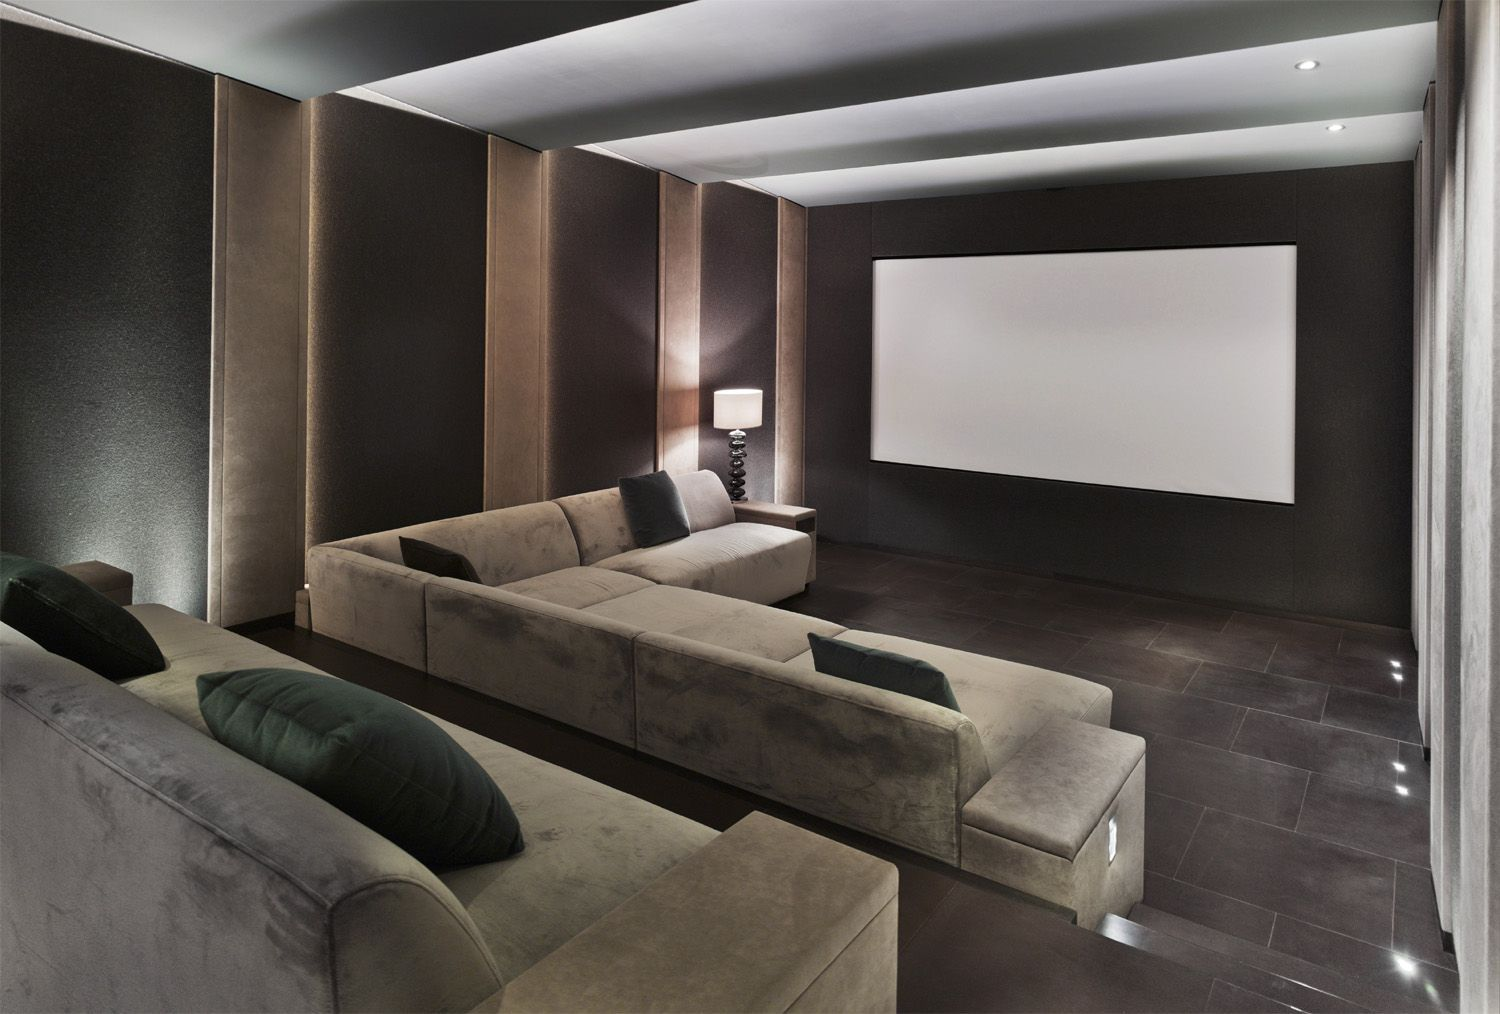 home theater systems | 7.1 surround sound | large format displays